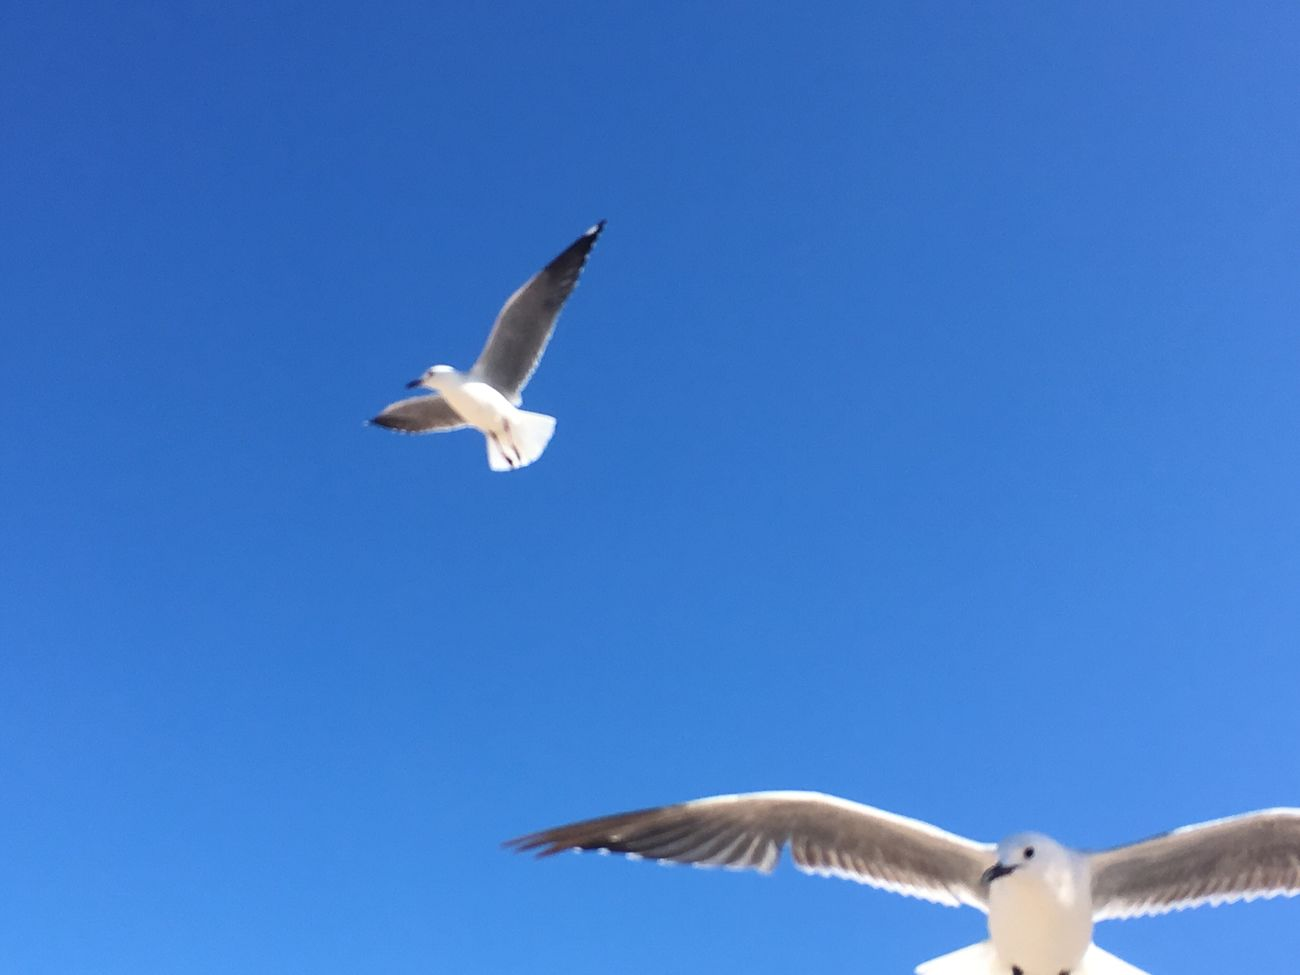 Seagulls In Flight Animal Themes Seagulls Unfiltered Low Angle View Spread Wings Clear Sky Blue Day Outdoors No People Minimalism Negative Space IPhoneography EyeEmNewHere EyeEmNewHere